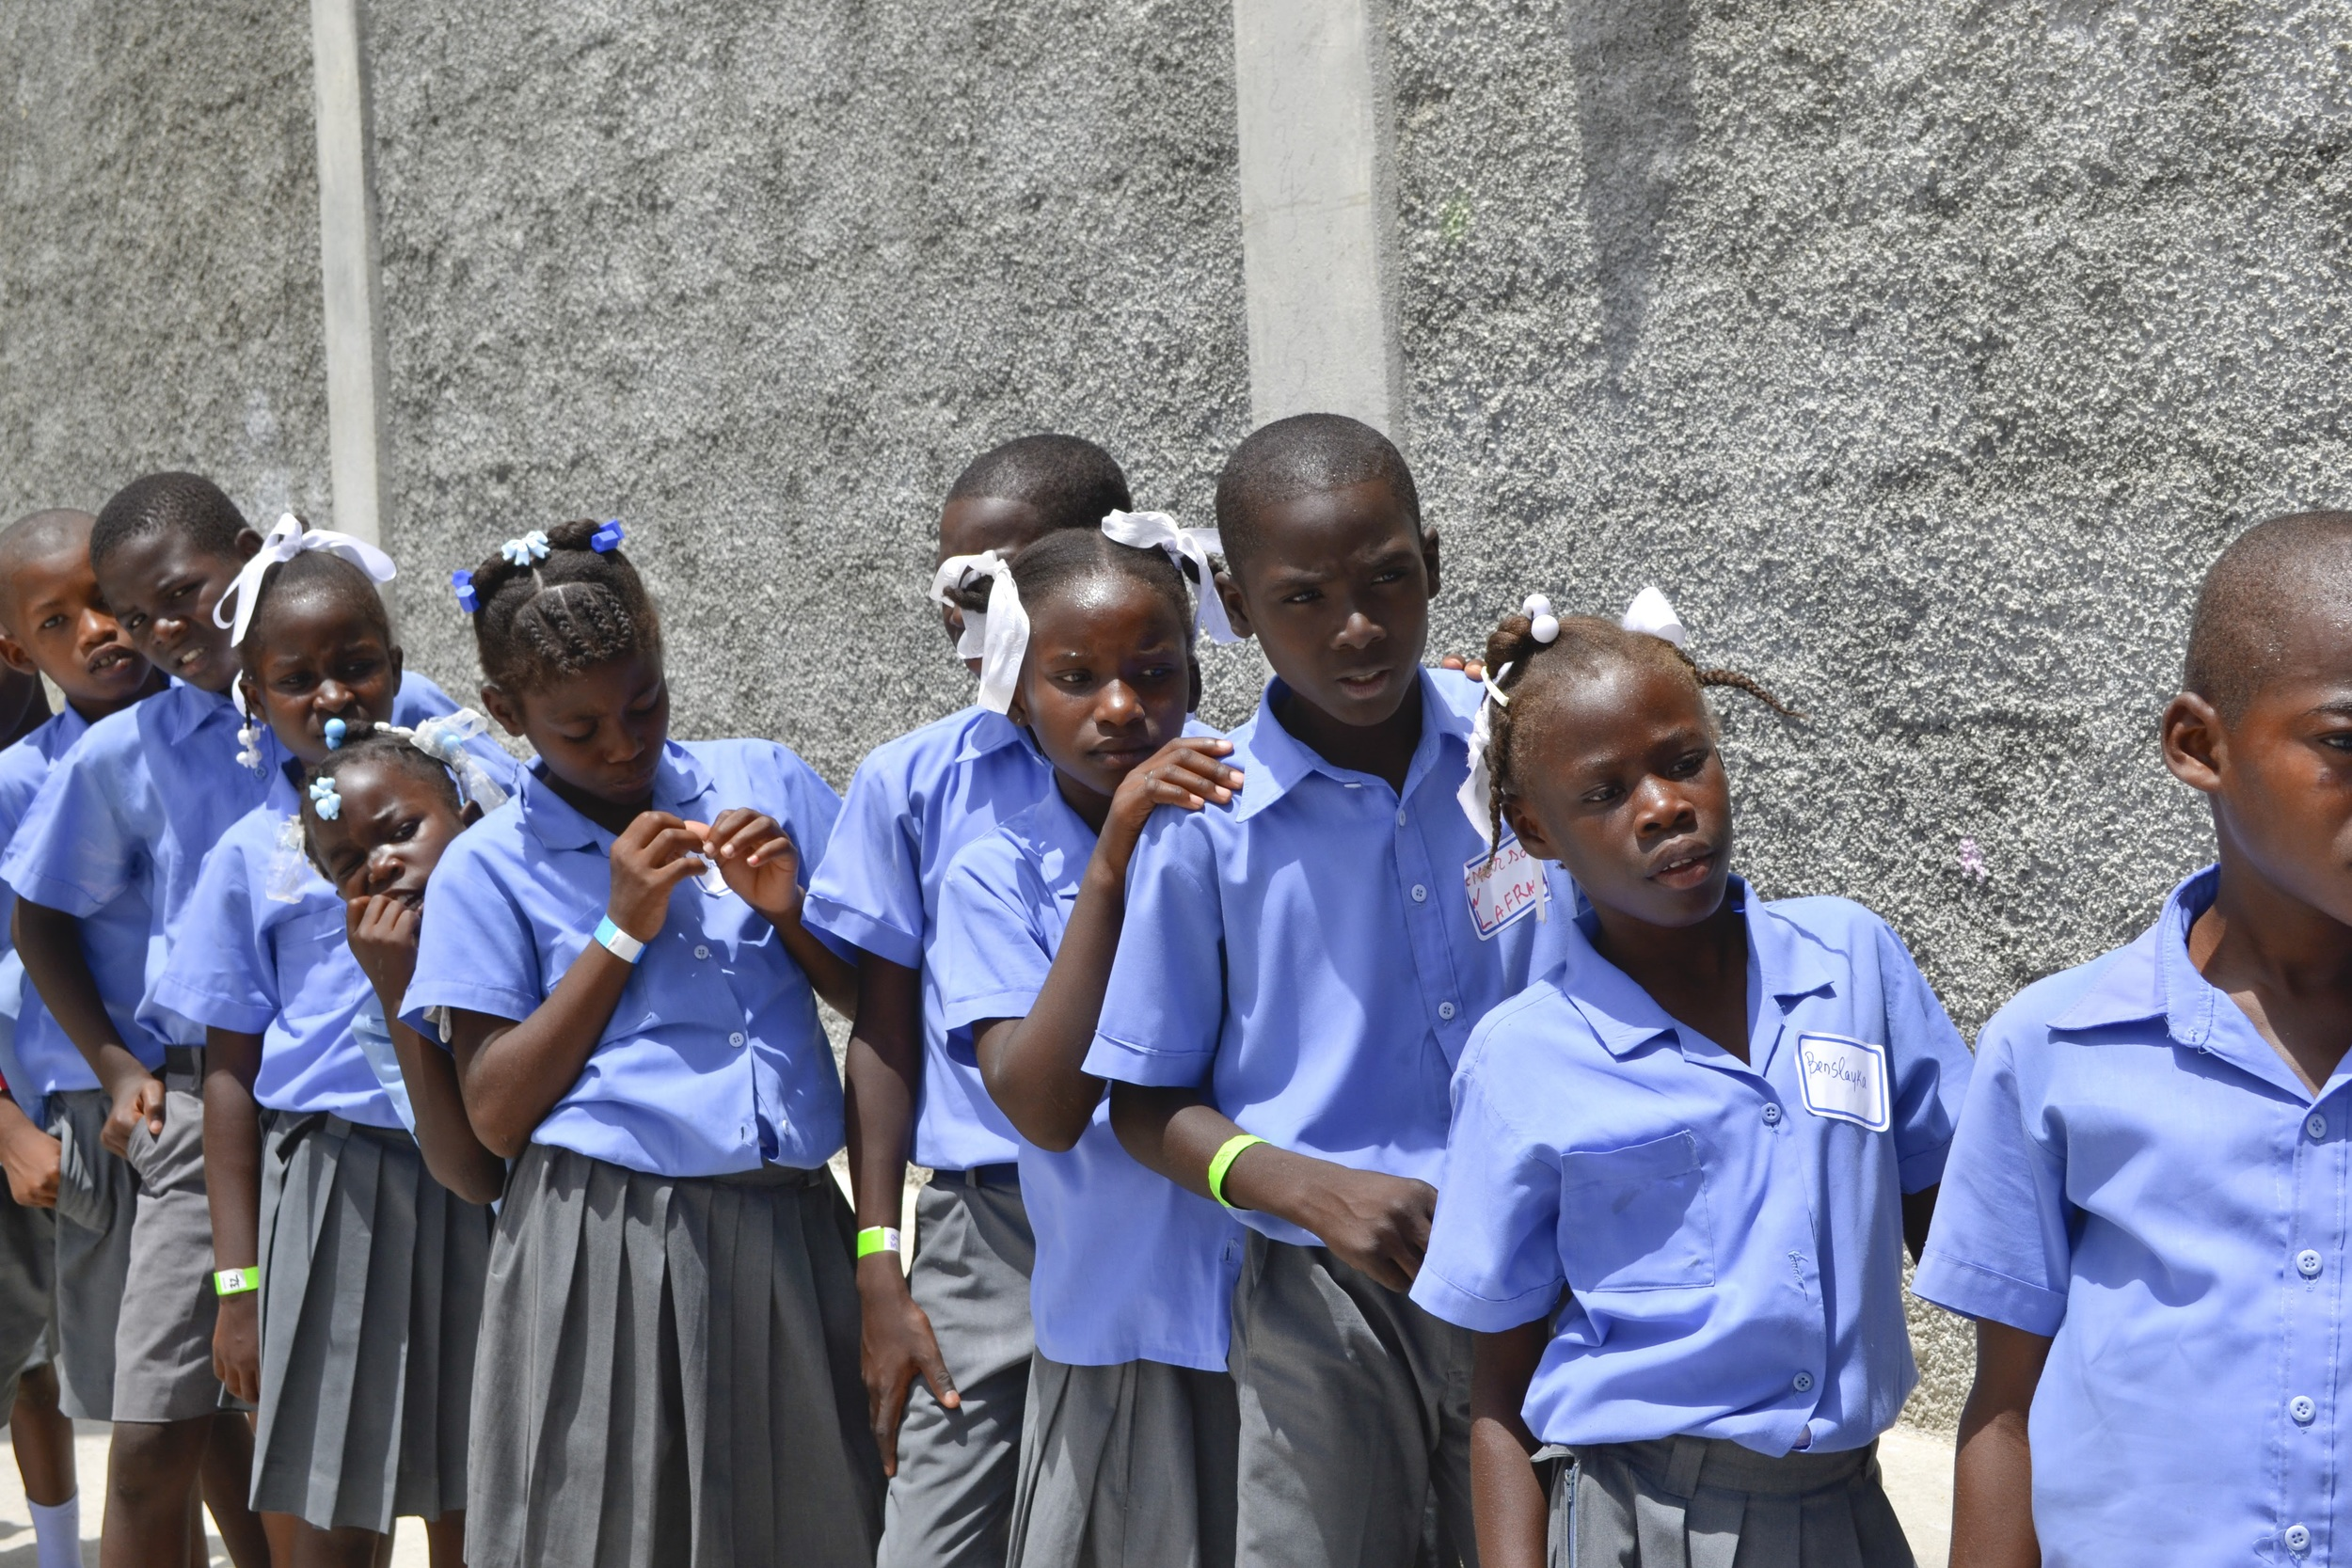 Two Uniforms Tailored to Fit Each Student